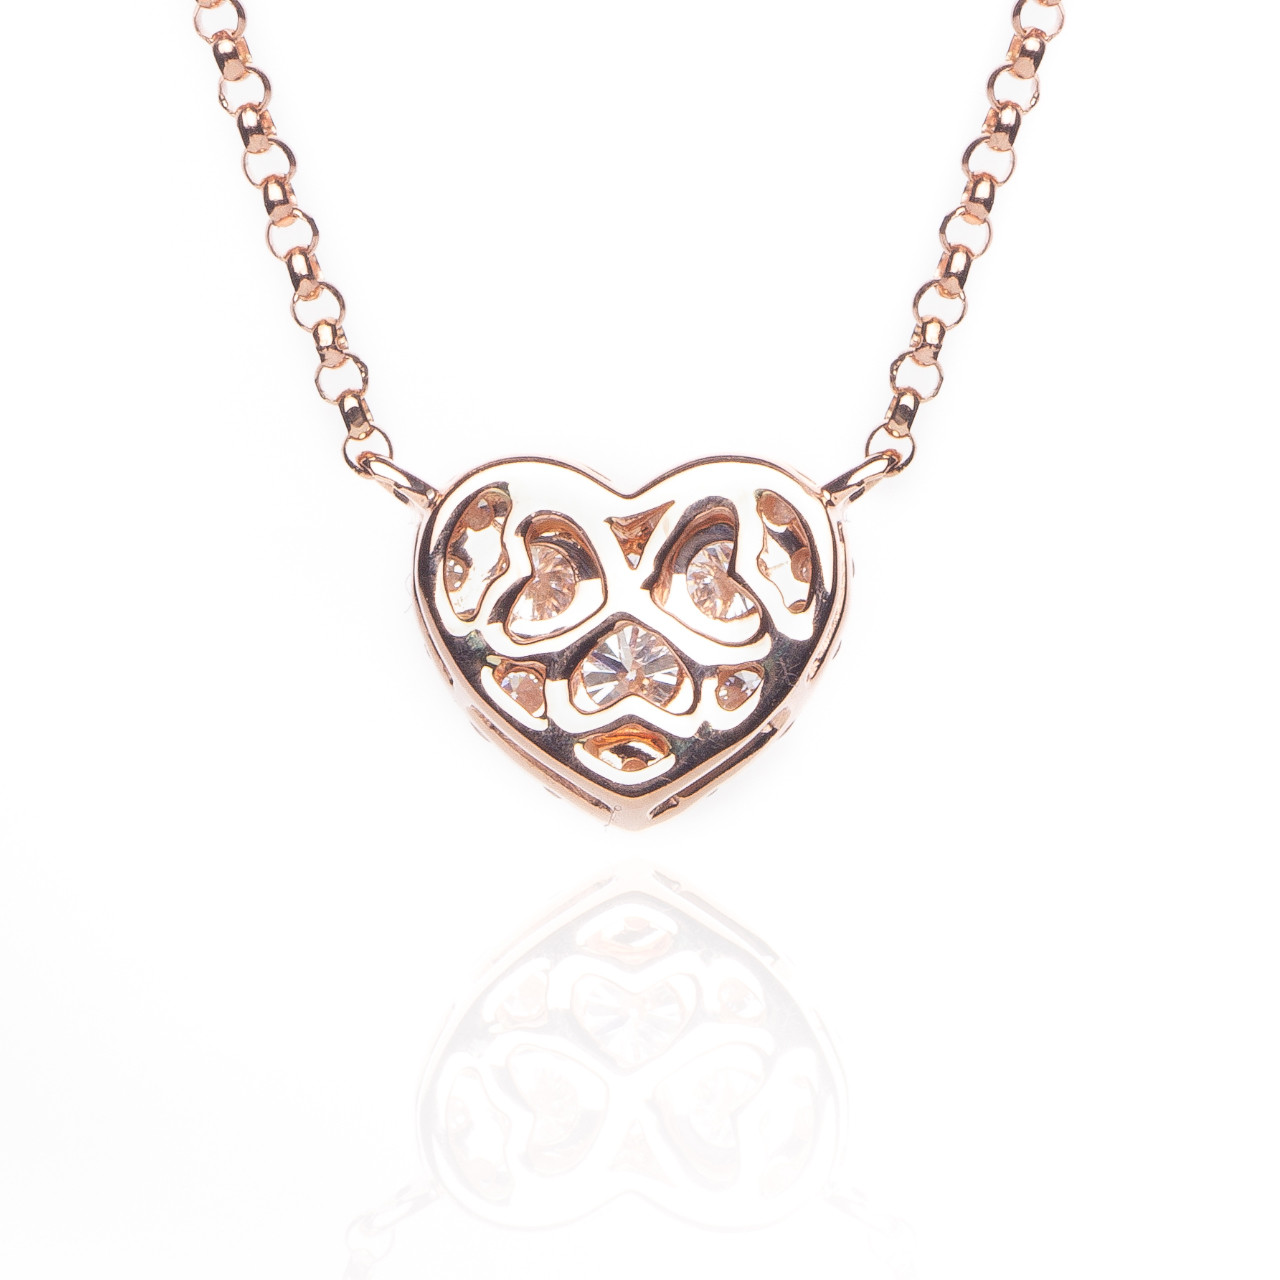 Details about  /0.50Ct Round Cut Diamond Womens Heart Pendant Necklace In 14K White Gold Finish